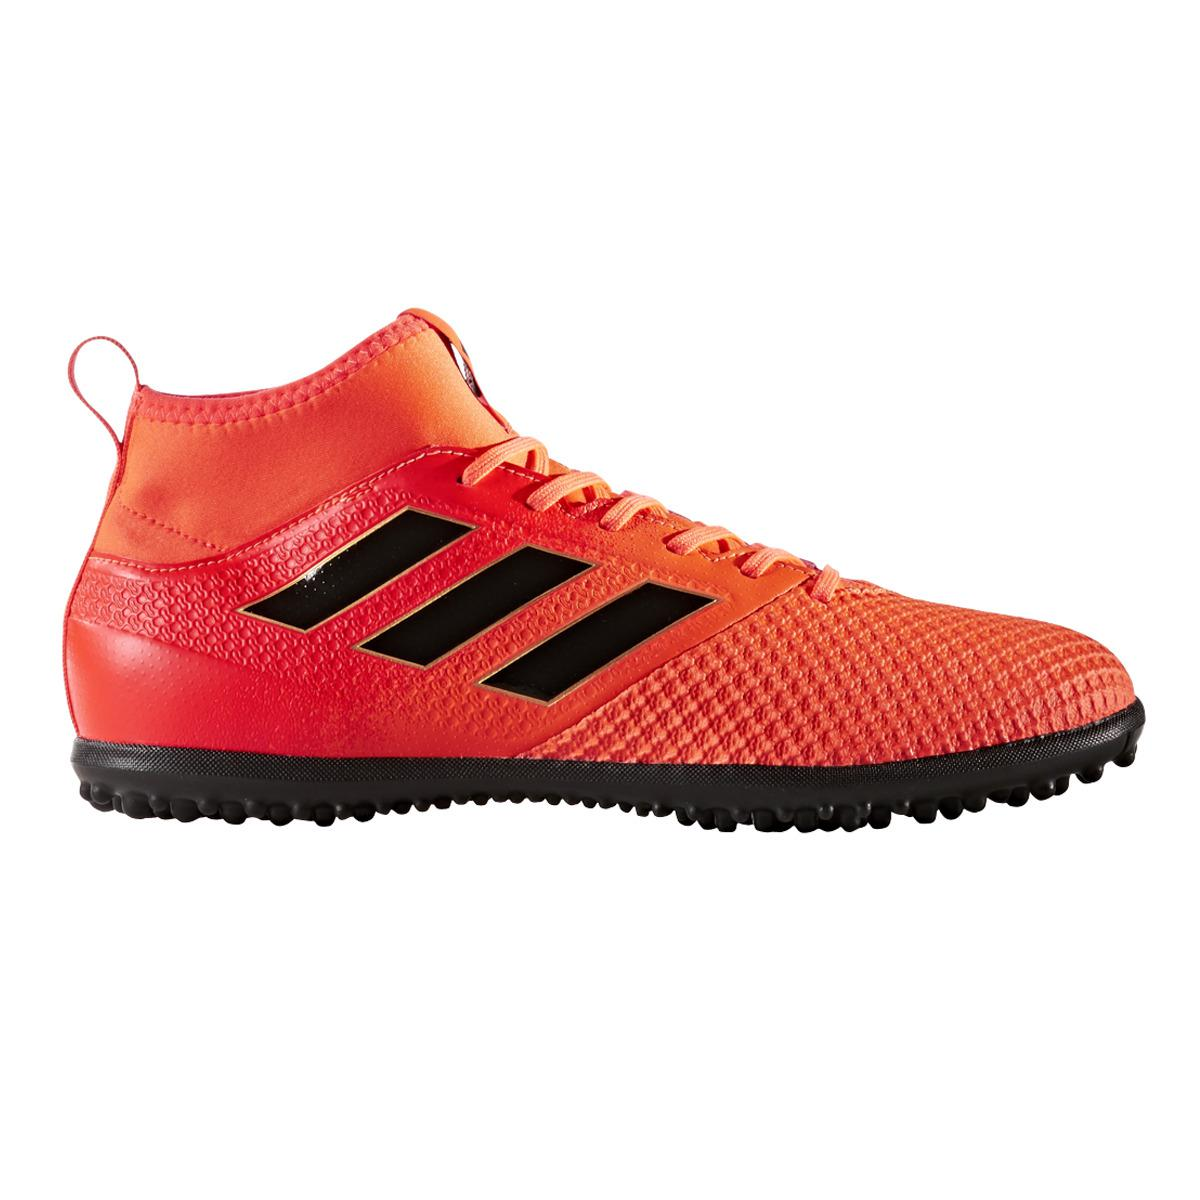 adidas football shoes turf